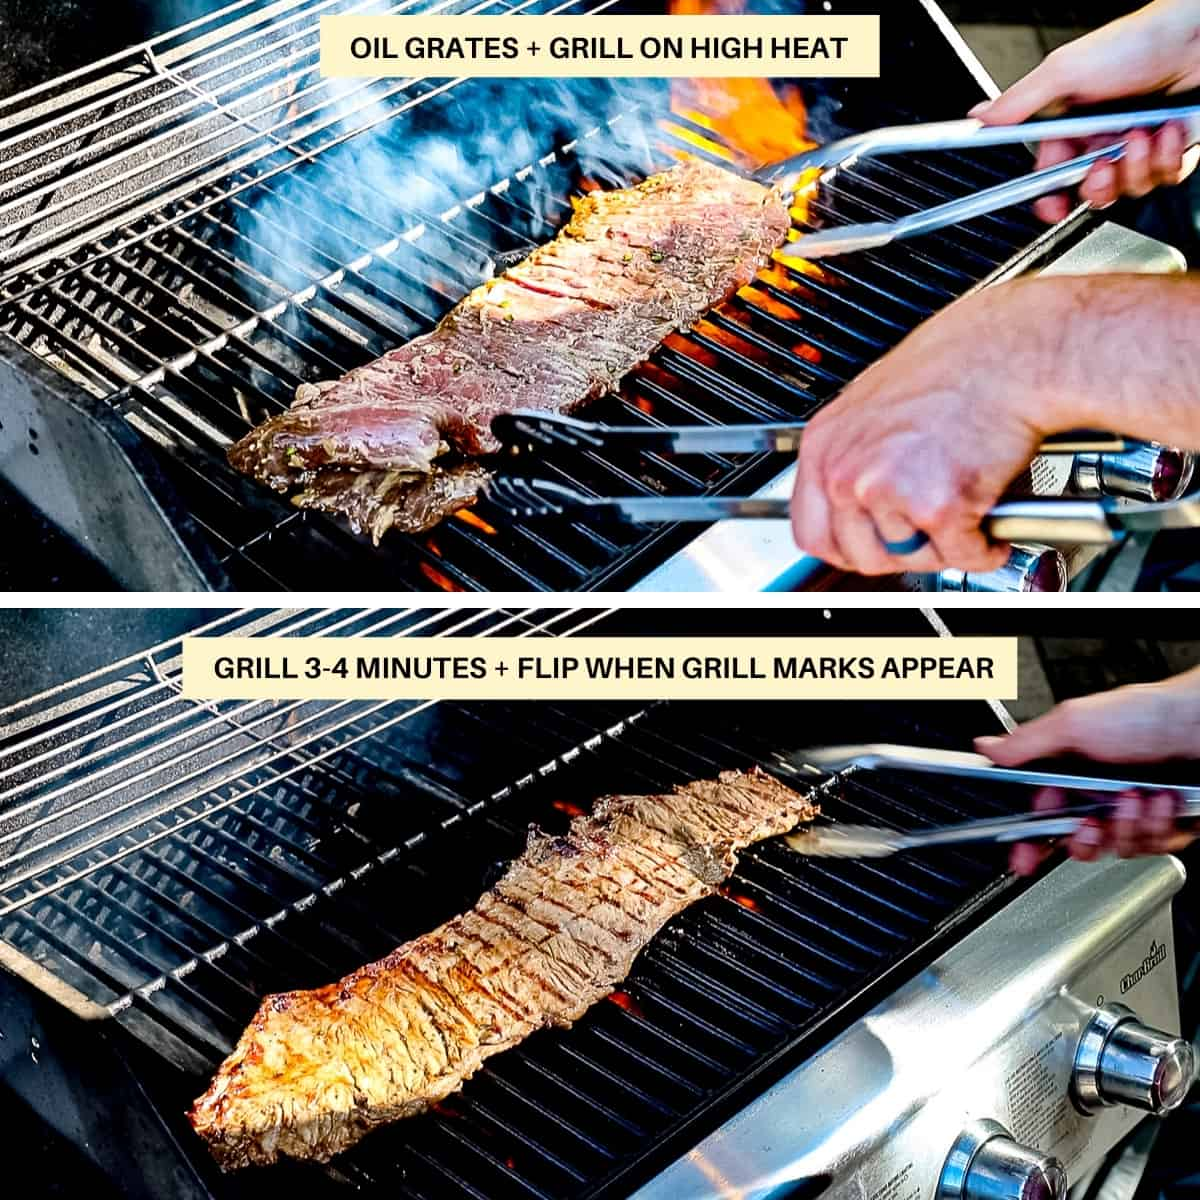 Image chart with text demonstrating how to grill marinated skirt steak on high heat.